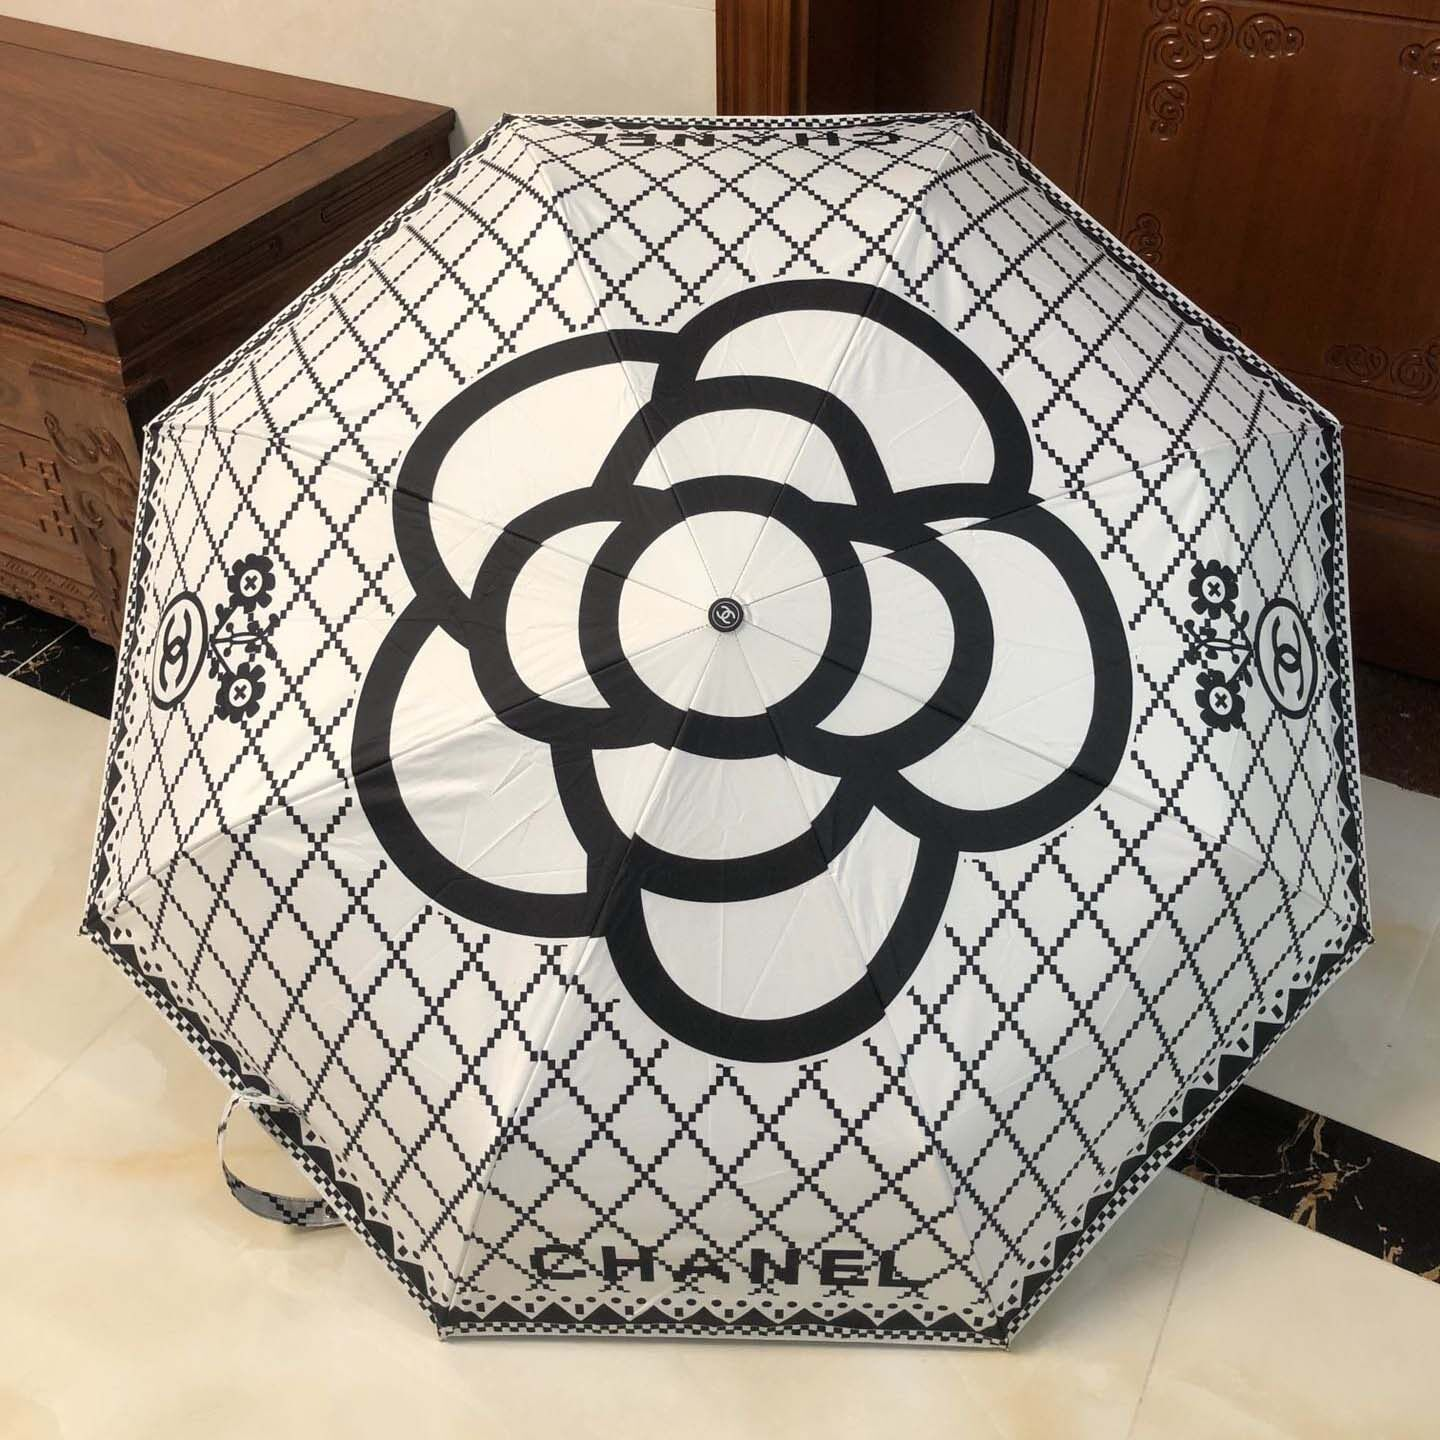 Chanell Elegant Camellia Pattern Upscale Automatic Open Foldable Windproof Umbrella Quick Operation Sturdy.